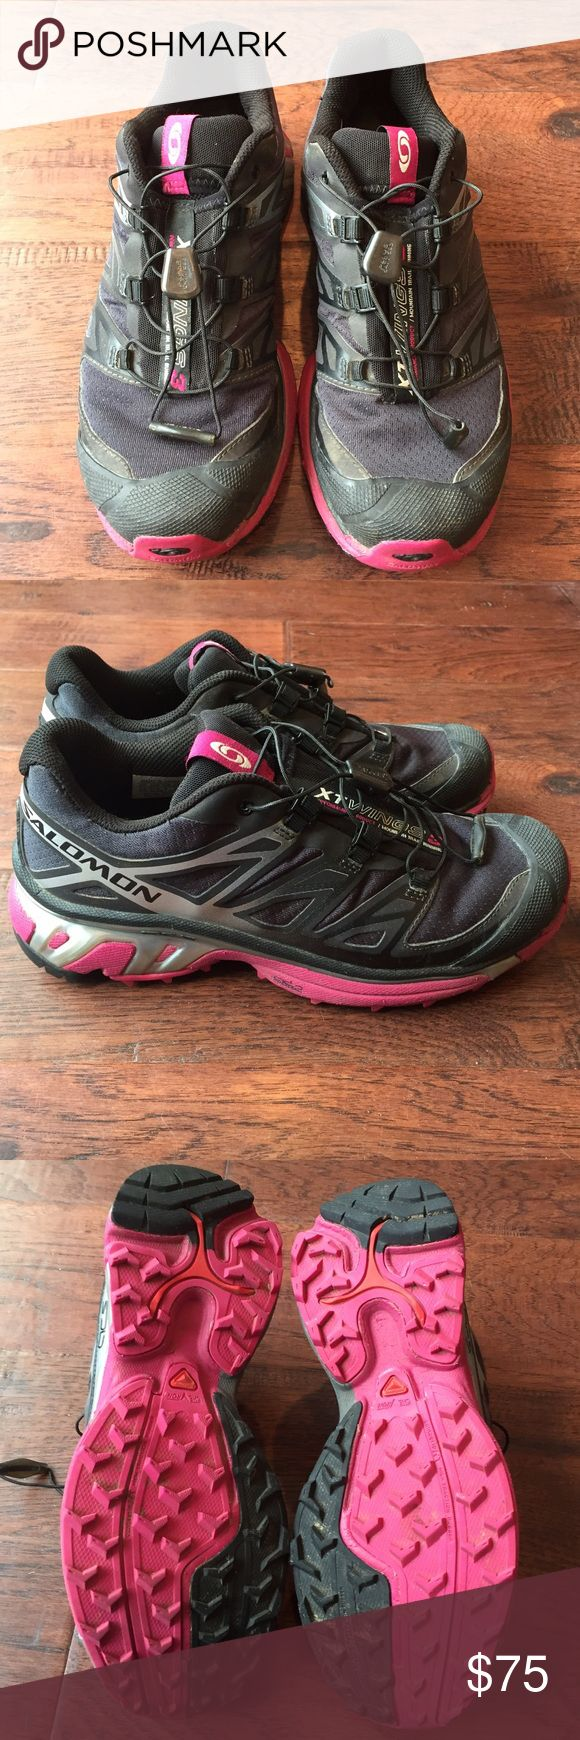 Salomon XT Wings 3 Trail Running Shoes Salomon - XT Wings 3 - Trail Running Shoes - Size 6 - Worn a few times, but in great condition - Smoke Free Home Salomon Shoes Athletic Shoes